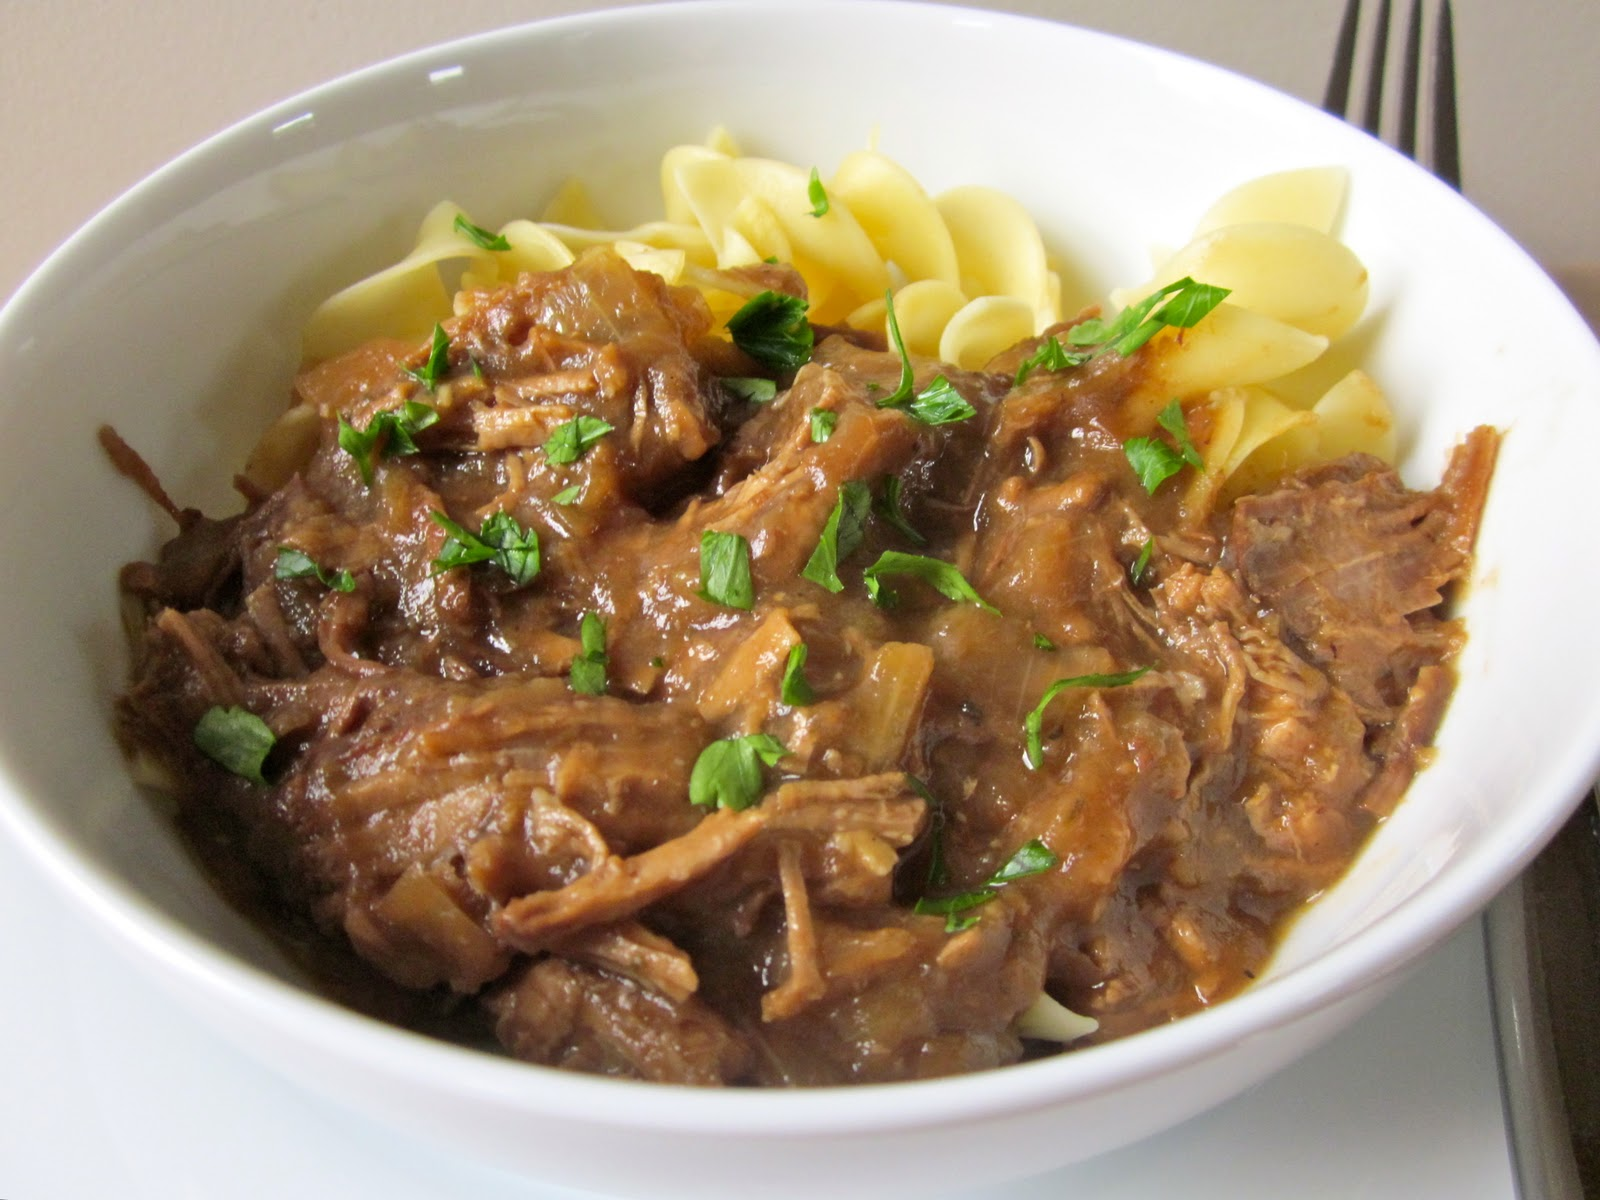 Much Kneaded: Slow-Cooker Beef Brisket with Onion Gravy